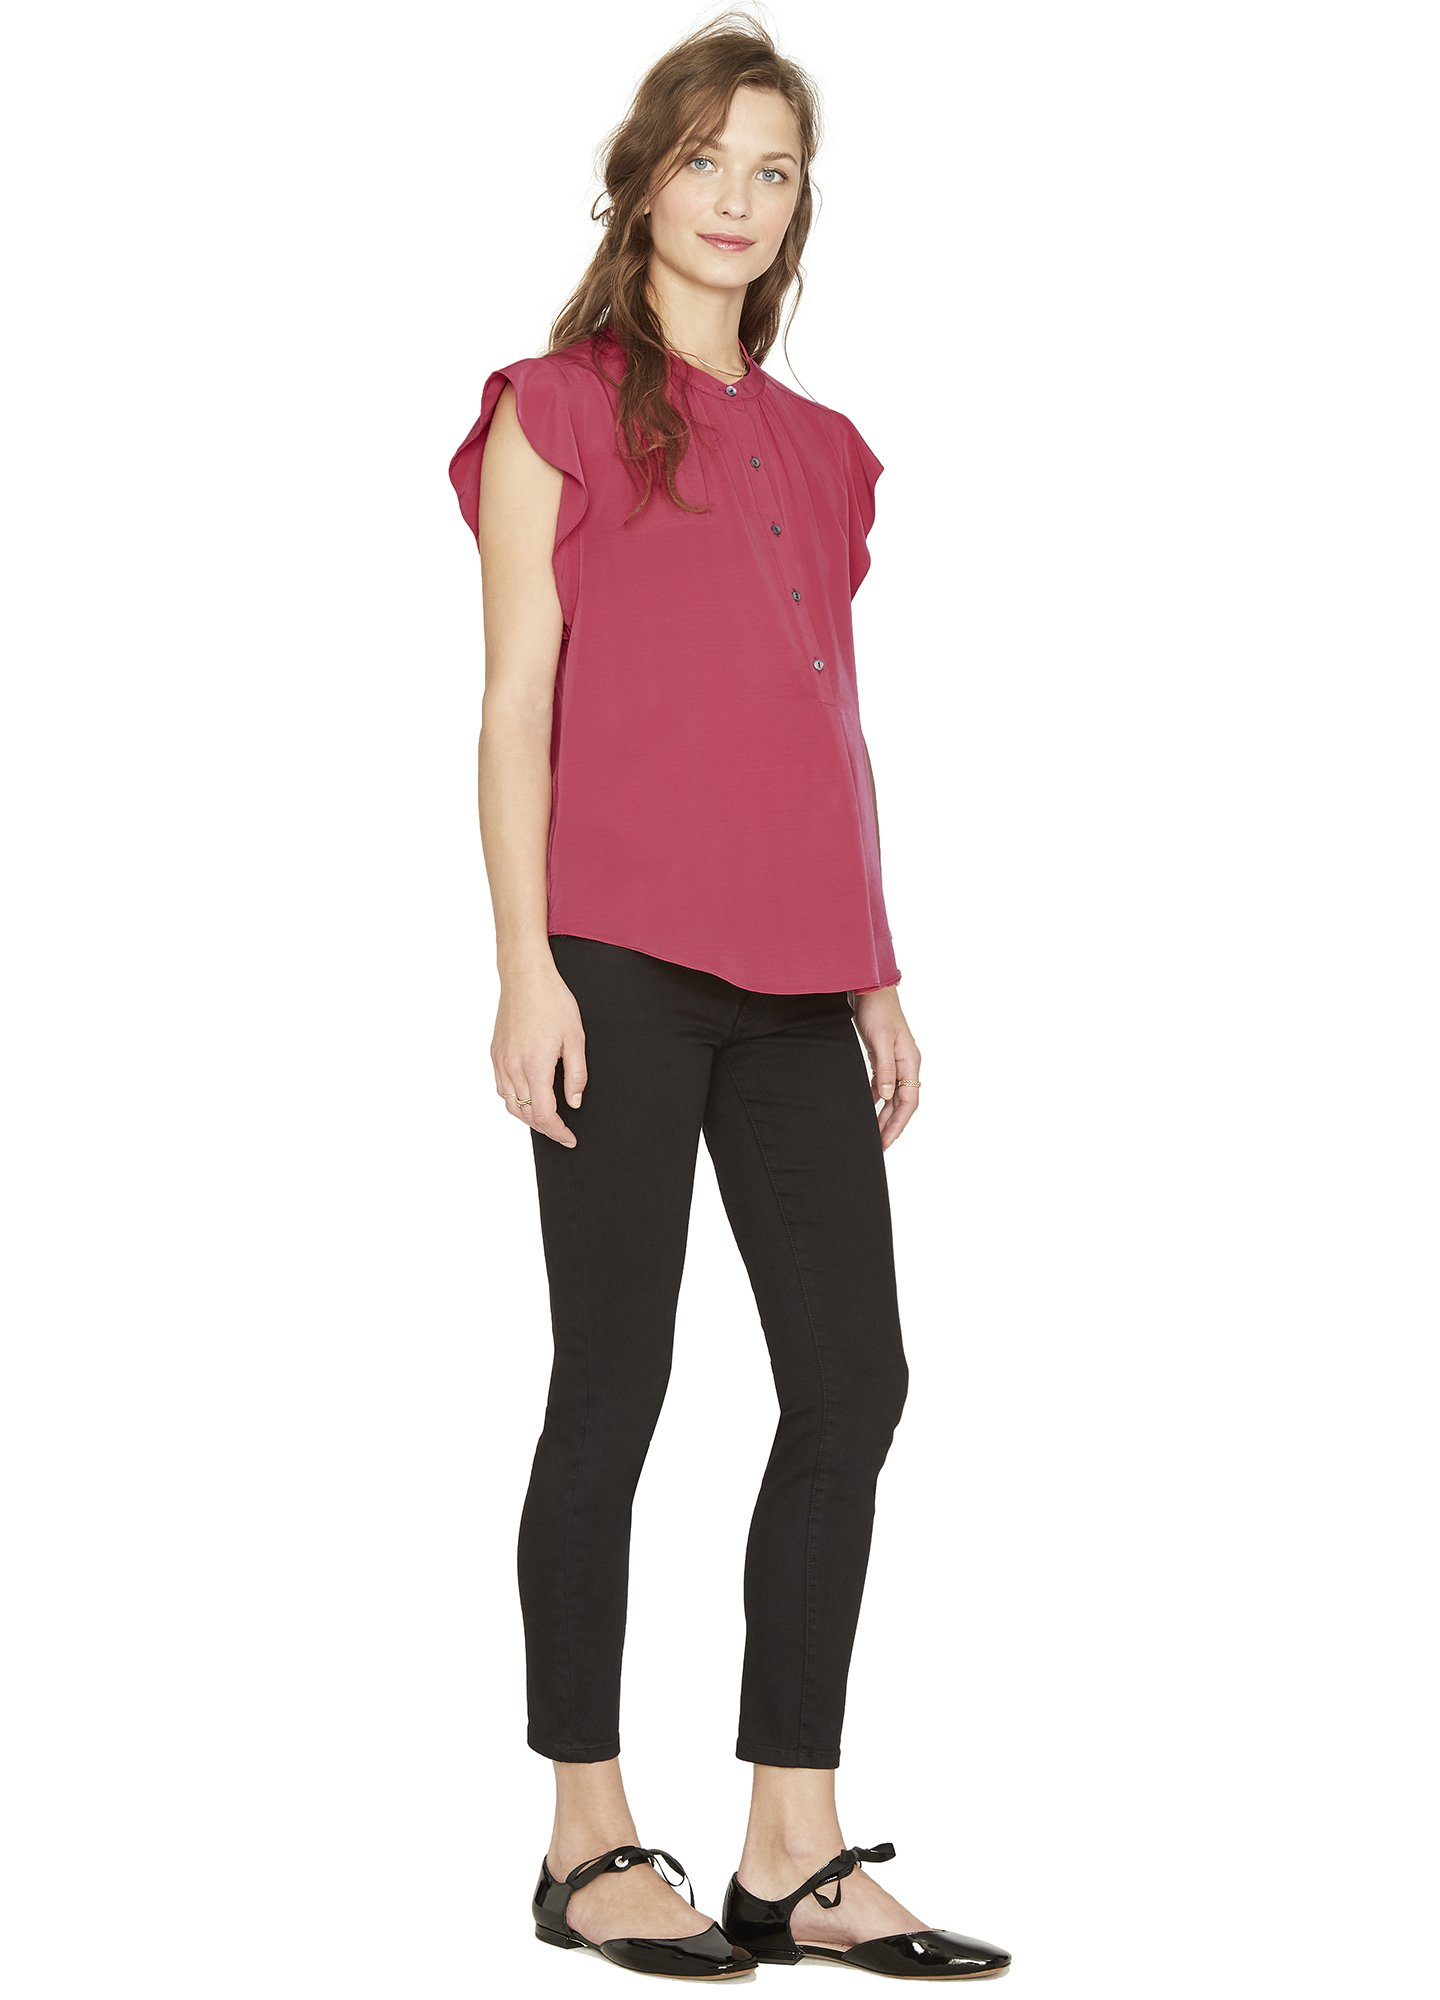 ec08311b846cce HATCH Collection Nearly Skinny Maternity Jeans - Meghan's Mirror